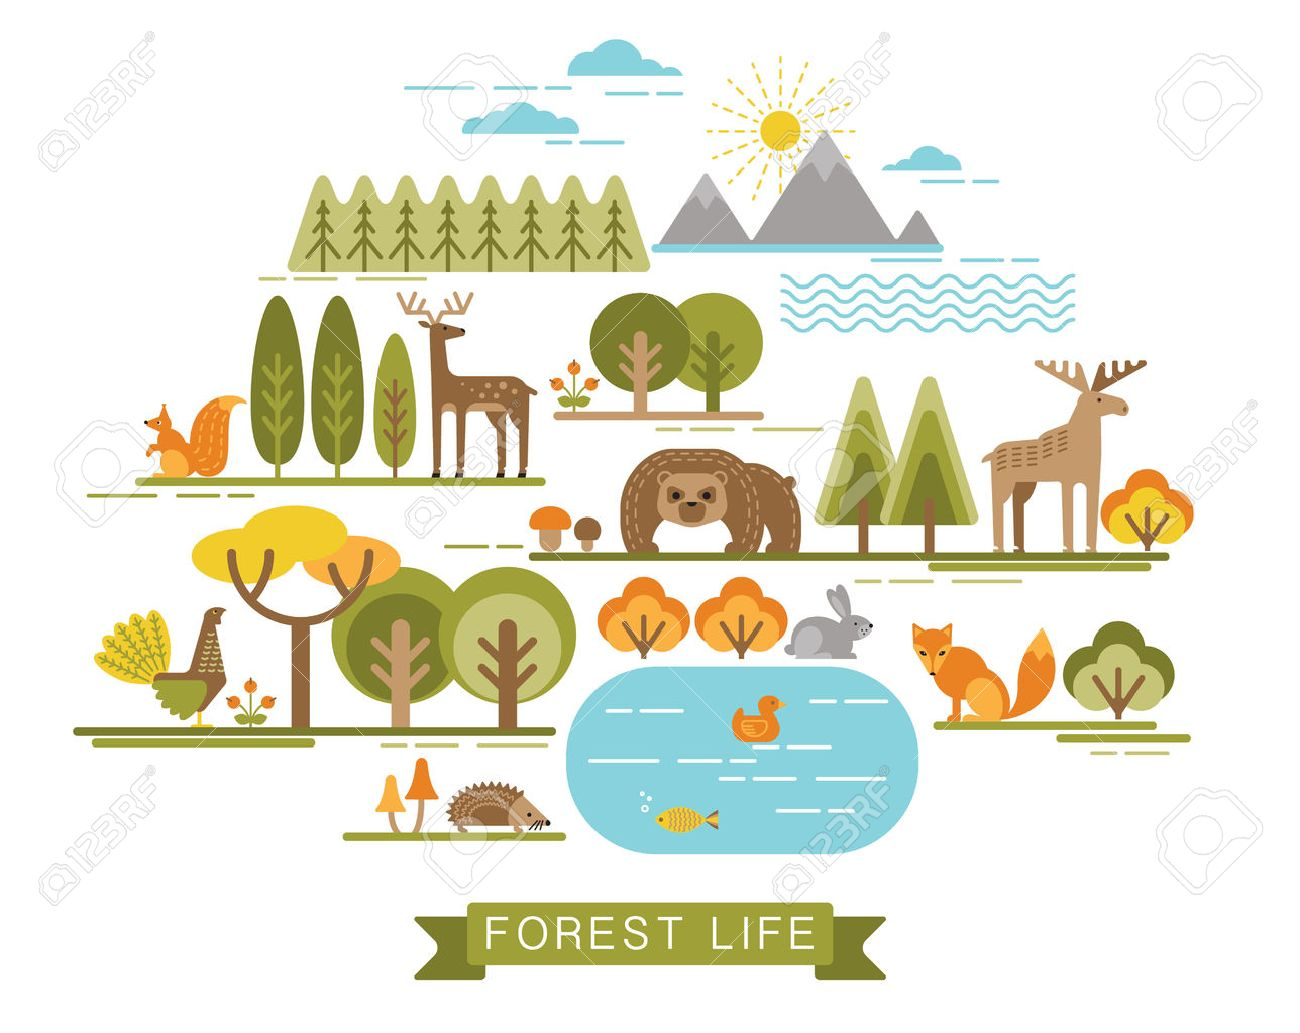 Vector illustration of forest life. Forest flora and fauna. Trendy graphic style. - 48016101